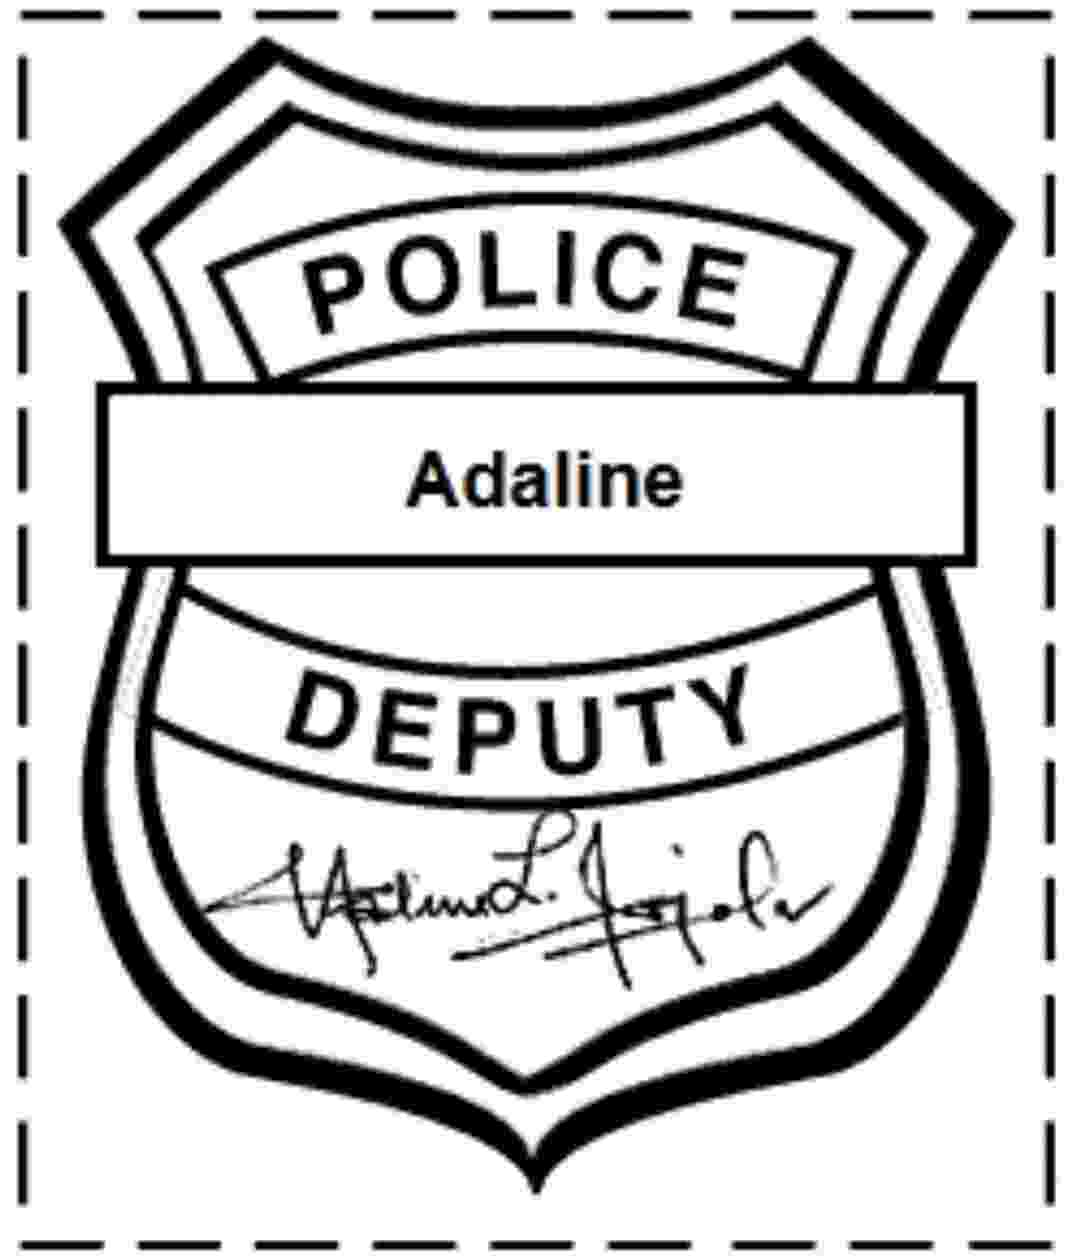 police officer badge coloring page police badge coloring page at getcoloringscom free page police officer badge coloring